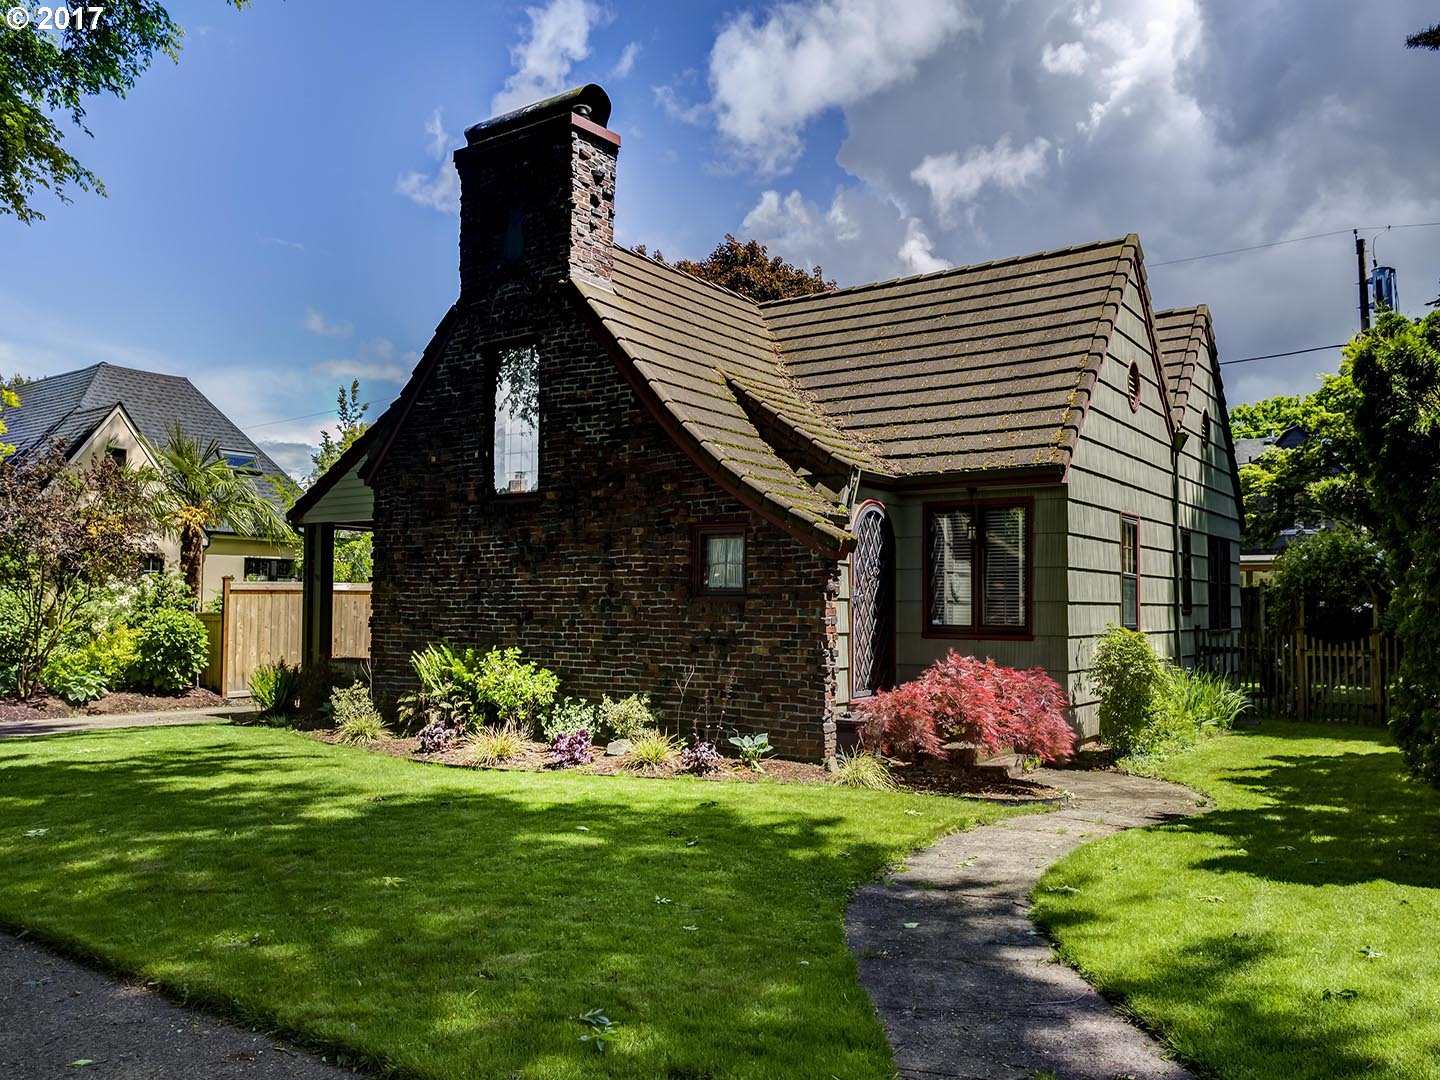 Wonderful English cottage in desirable Mock Crest. Impressive living room with vaulted wood beam ceilings and a beautiful river rock wood burning fireplace. Large dining room that leads to an updated kitchen with an eat in nook with lots of natural light. Finished basement makes a great TV room with a large laundry room and bathroom. Over sized lot with large detached garage.